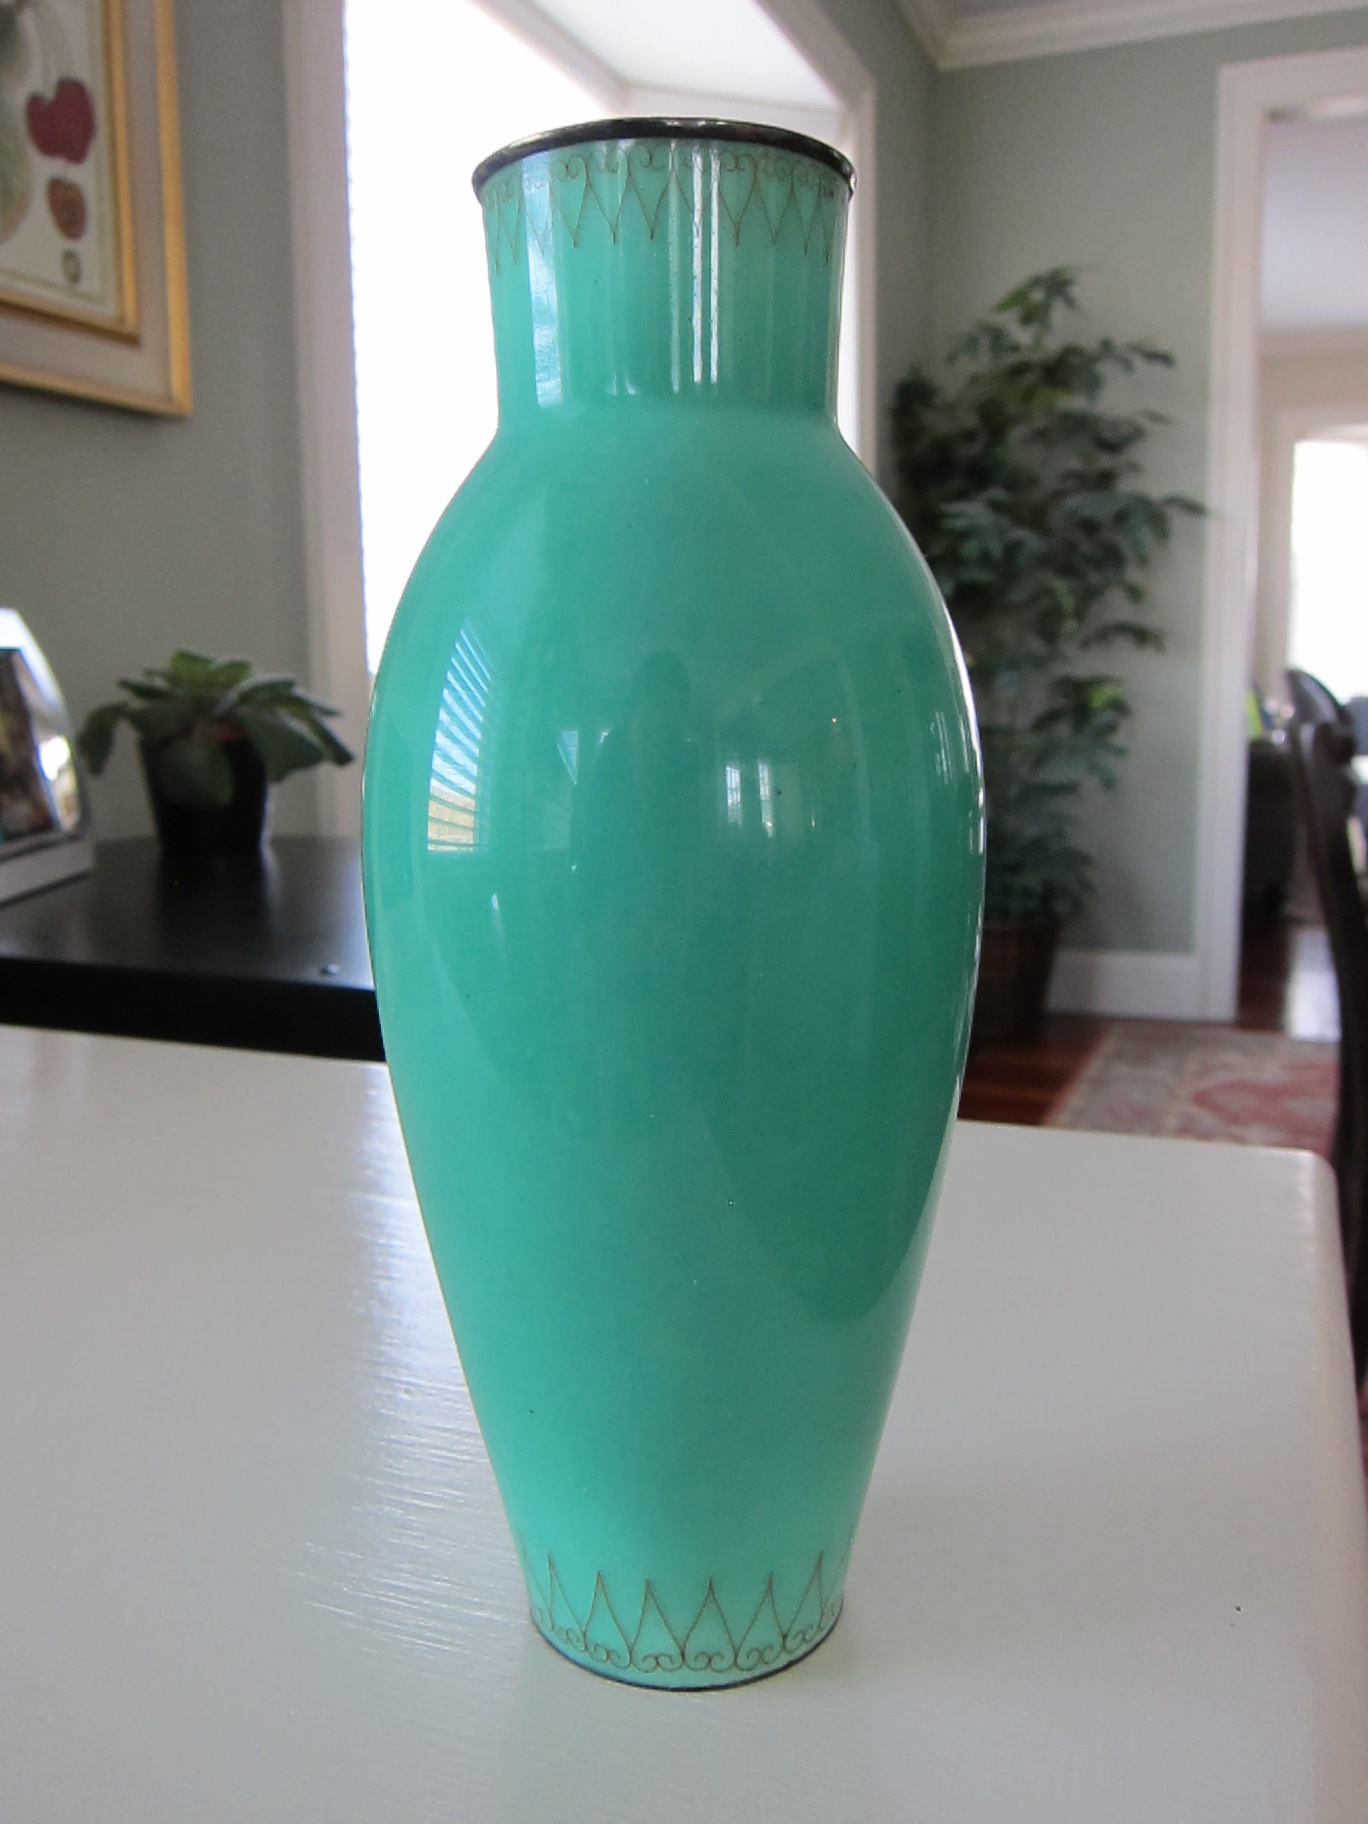 Green Ceramic Vase - Full View